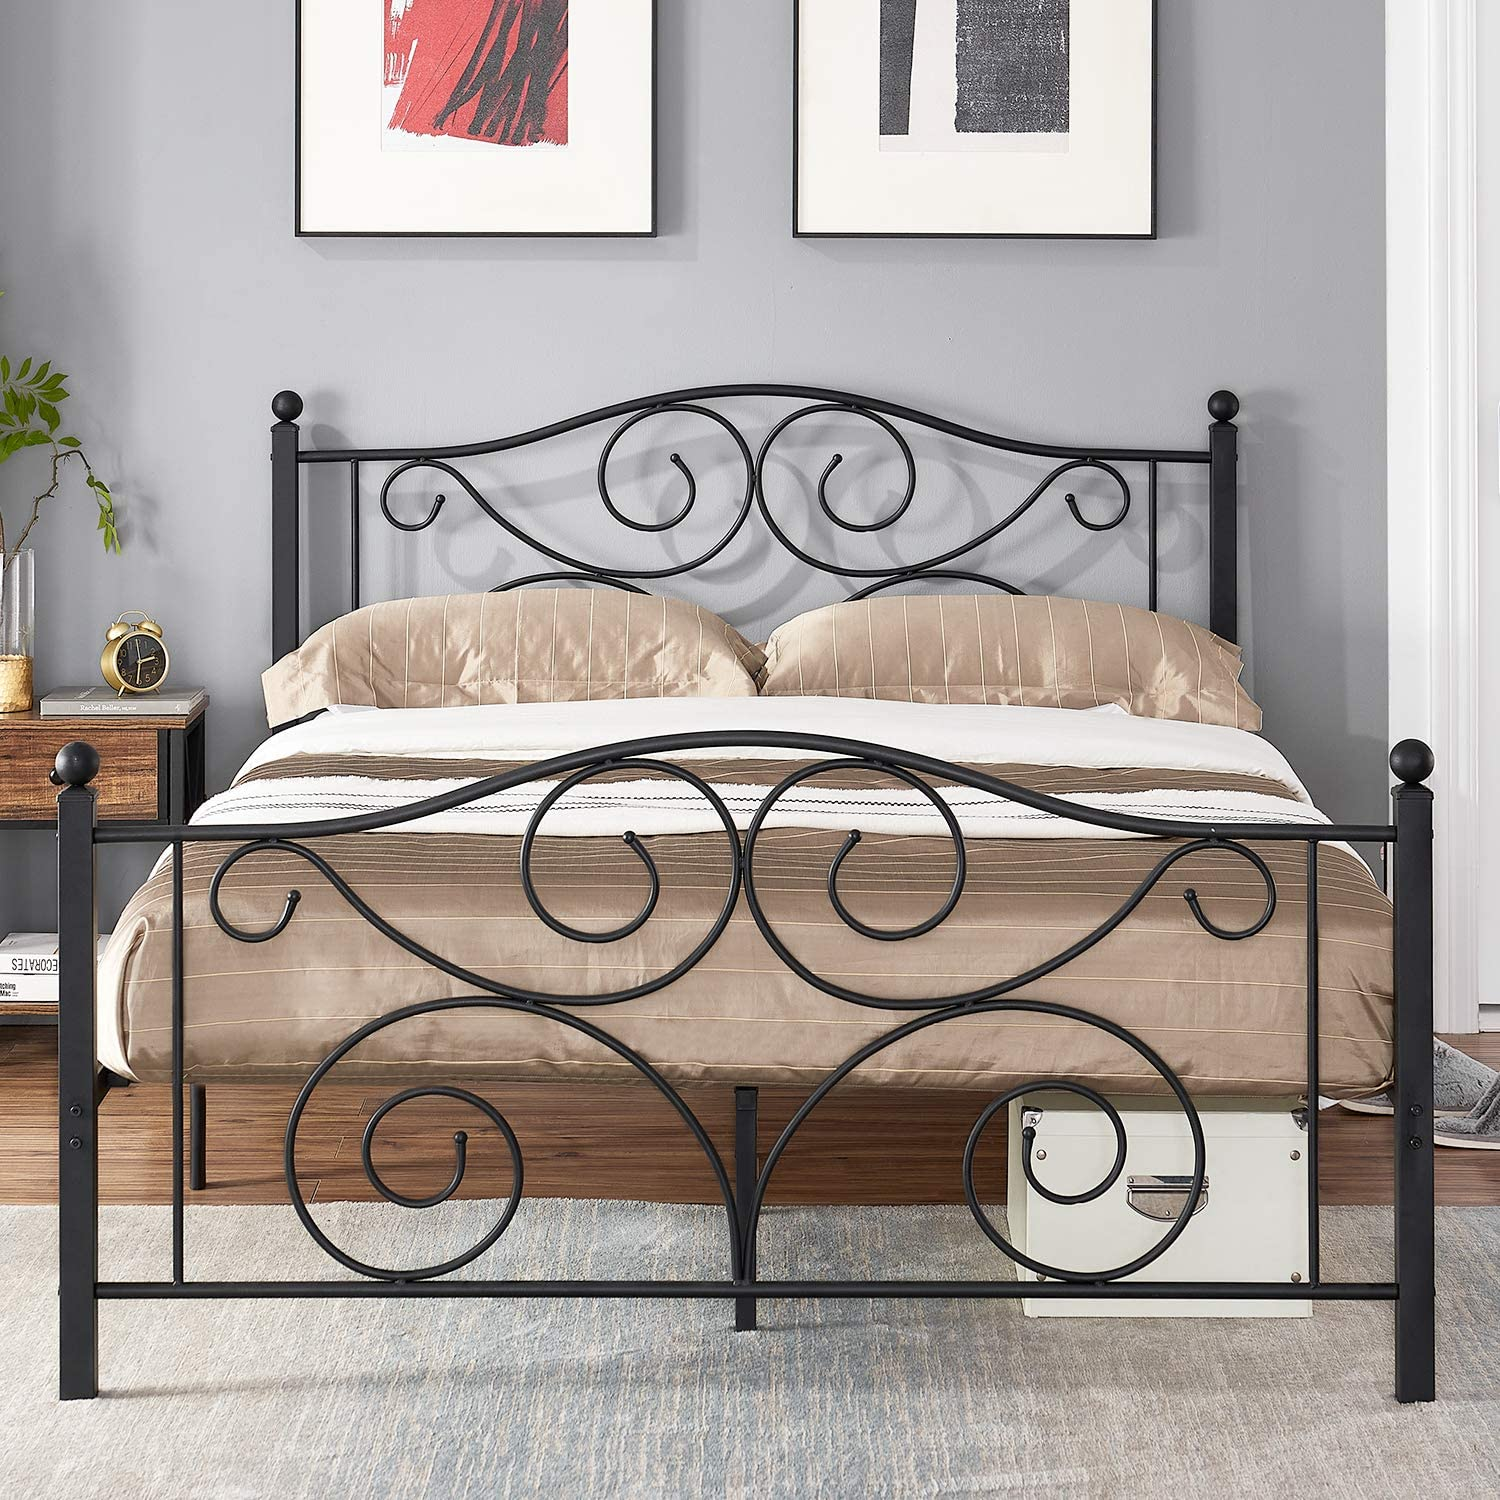 VECELO Metal Bed Frame Platform Mattress Foundation with Headboard & Footboard Box Spring Replacement, Heavy Duty & Quick Assembly, Queen, Deluxe Black